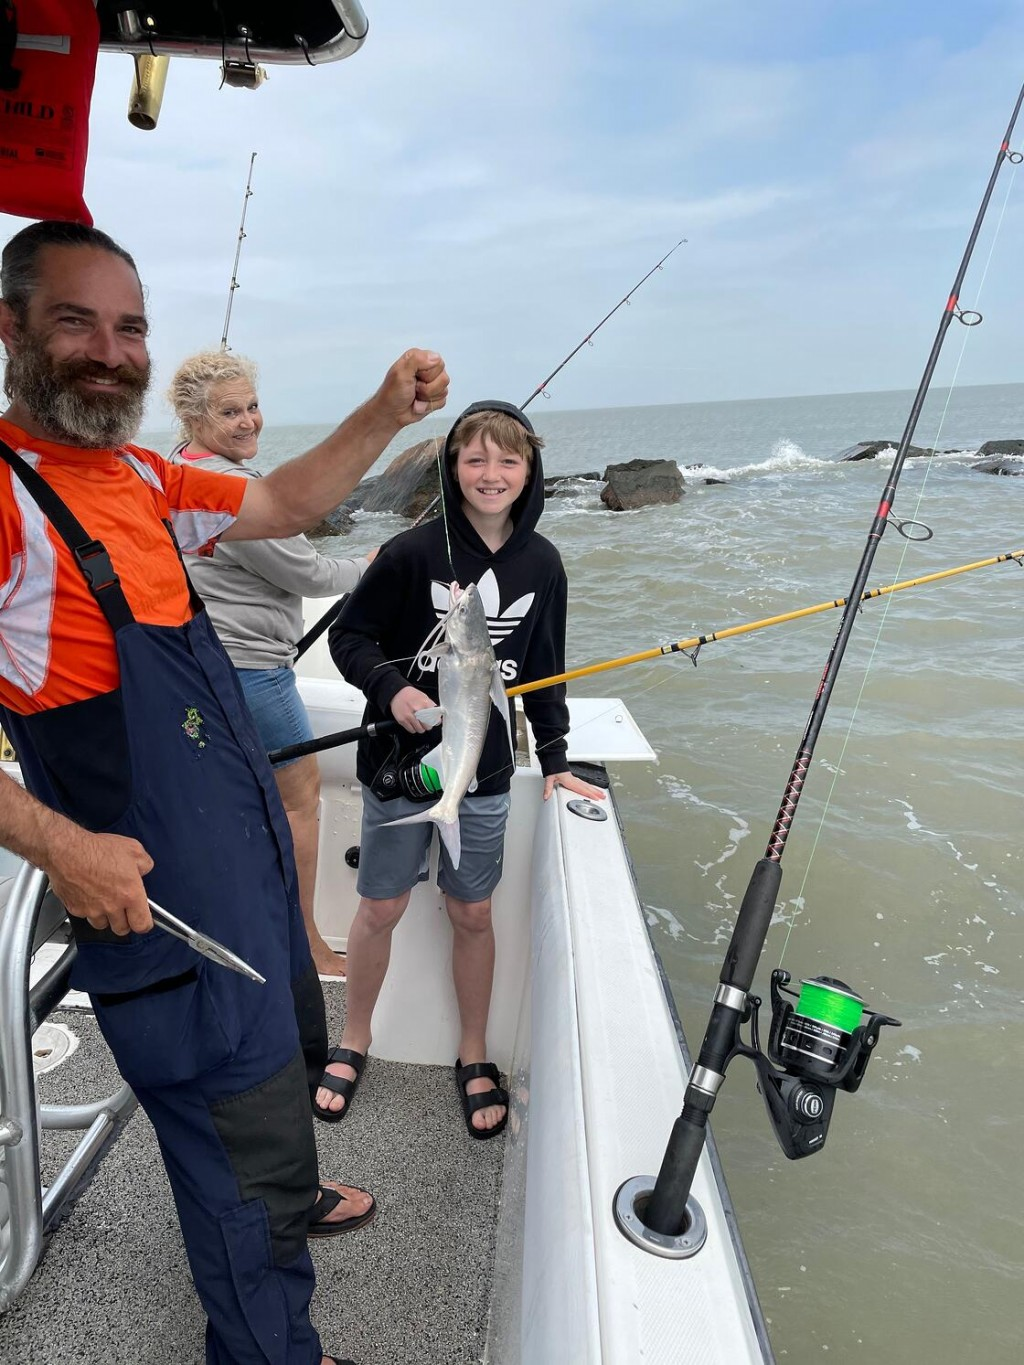 Action pack fishing trip